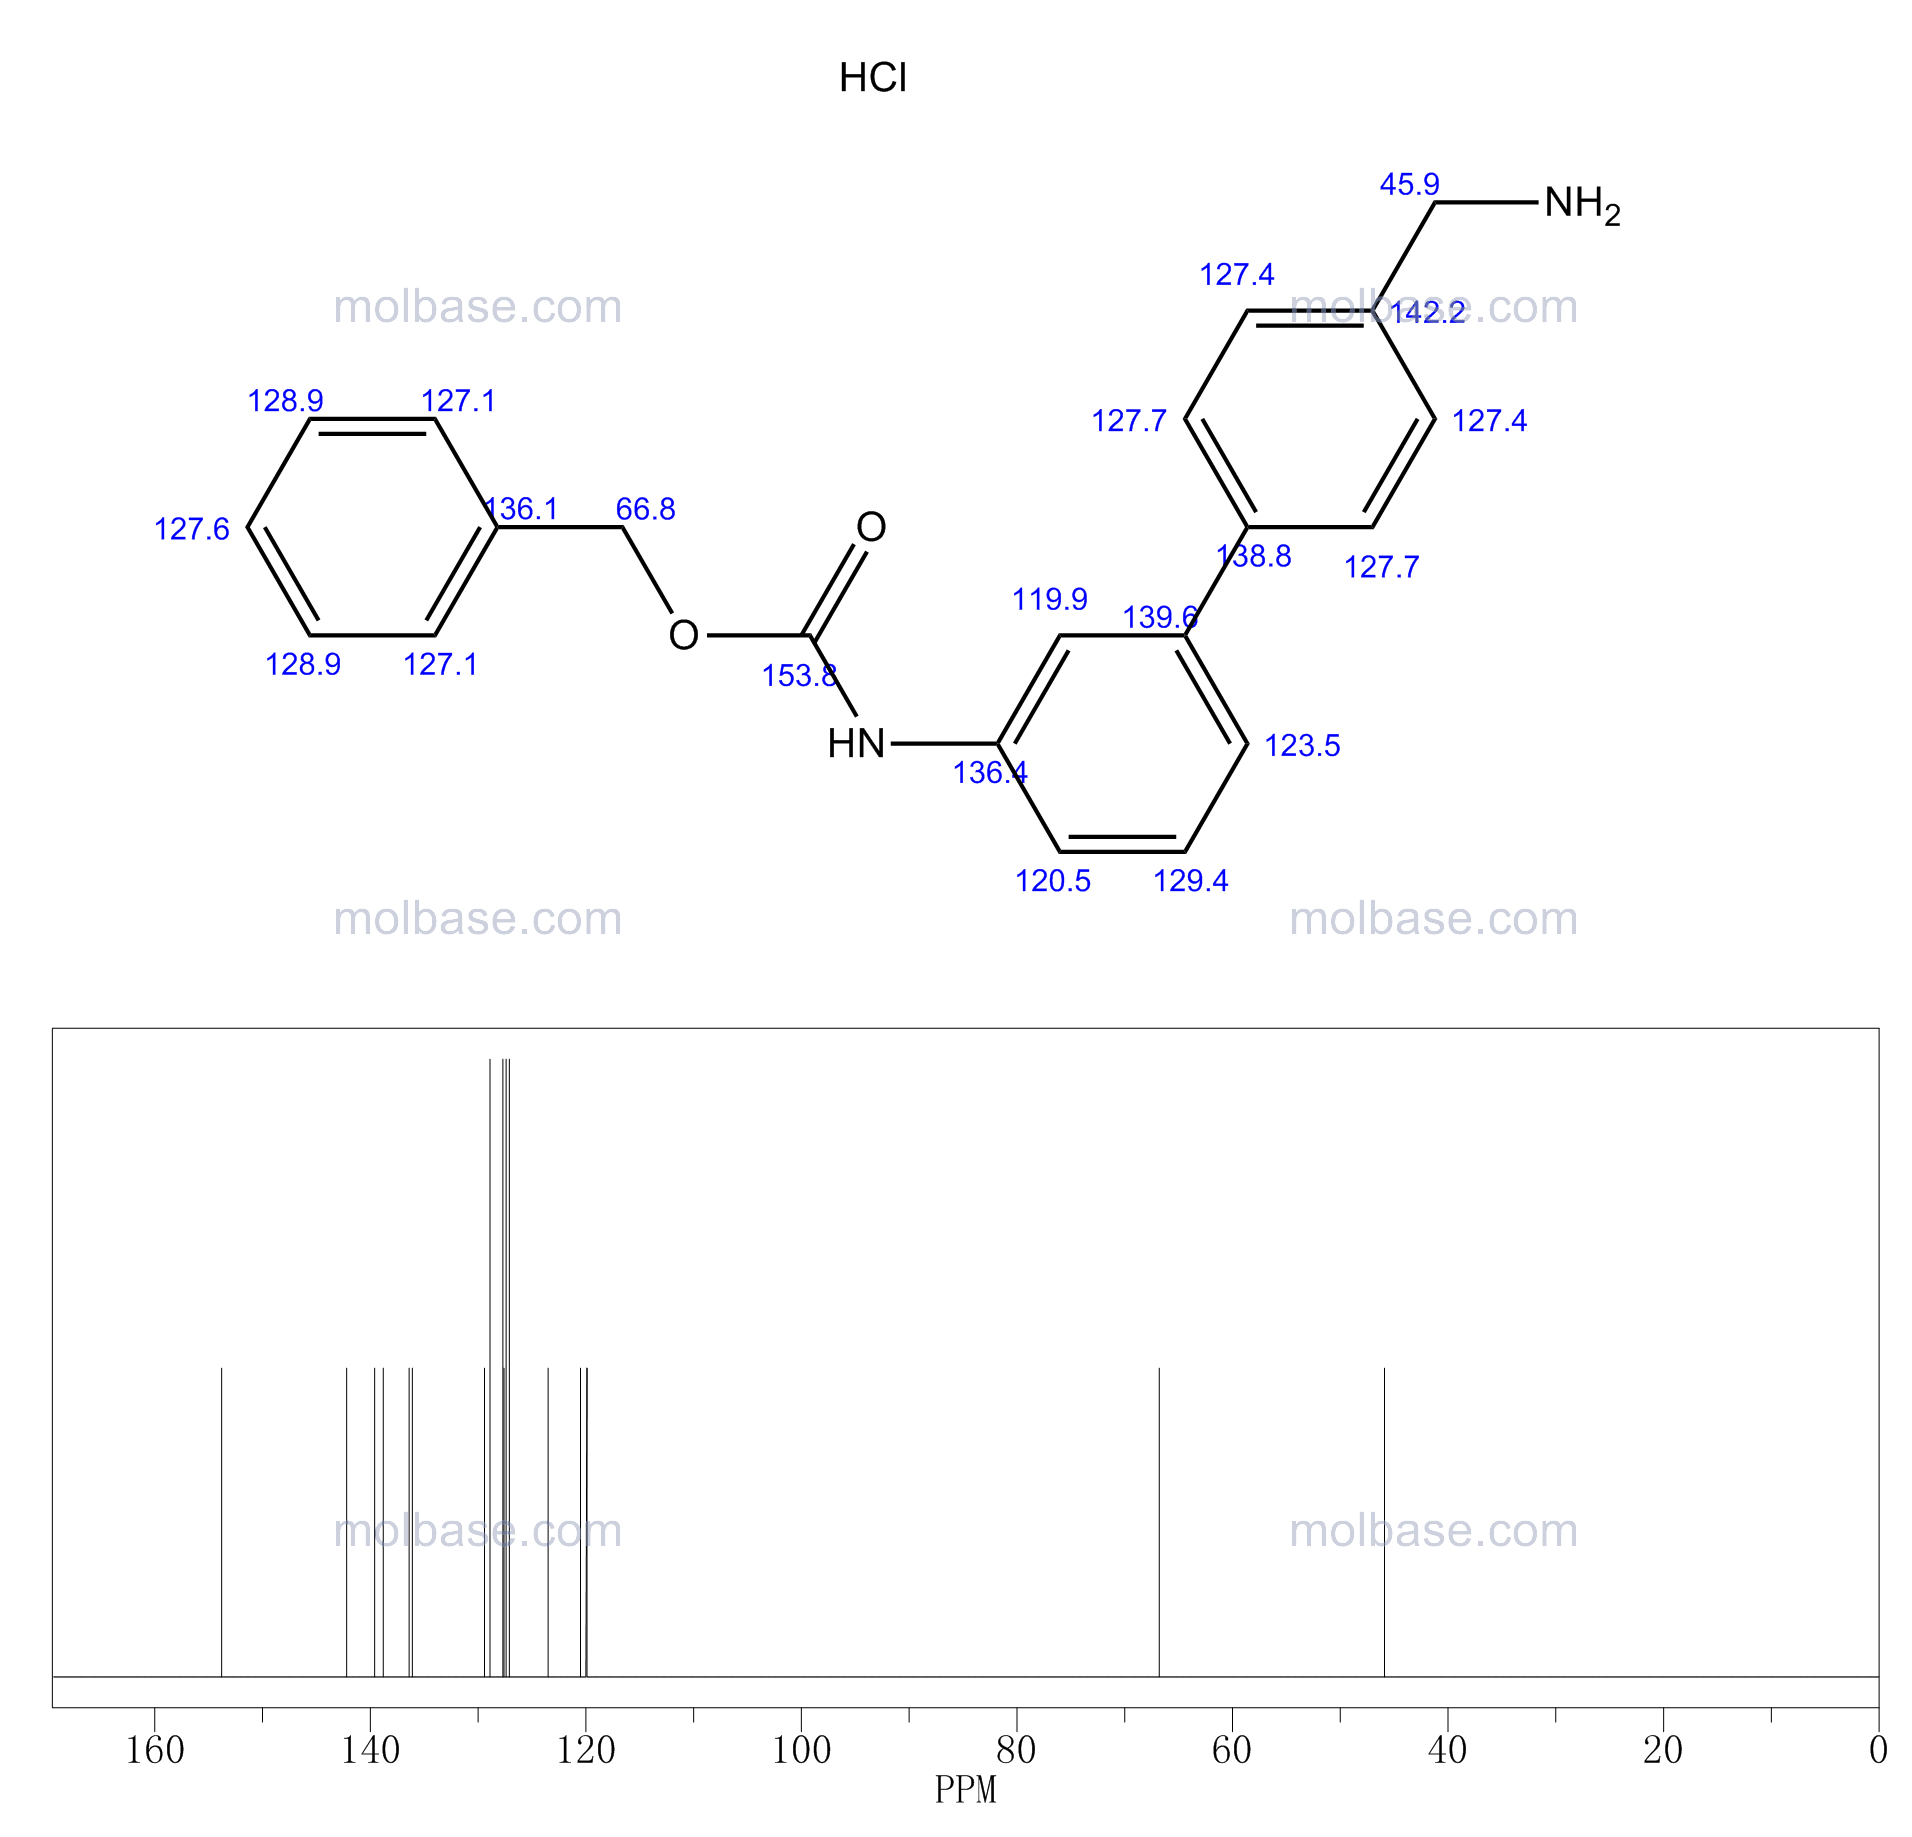 benzyl N-[3-[4-(aminomethyl)phenyl]phenyl]carbamate NMR spectra analysis, Chemical CAS NO. 880157-18-6 NMR spectral analysis, benzyl N-[3-[4-(aminomethyl)phenyl]phenyl]carbamate C-NMR spectrum